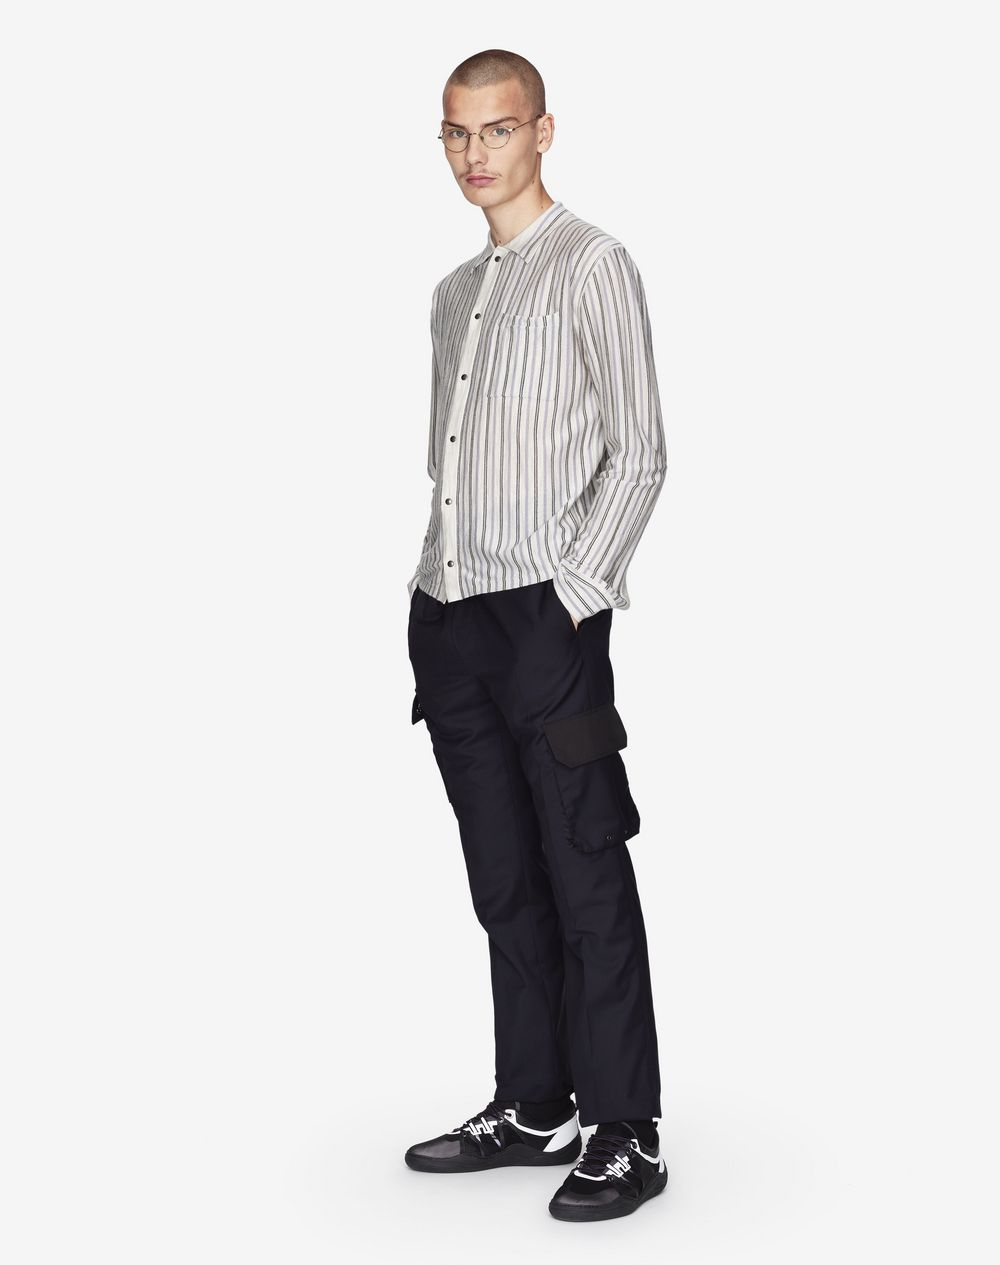 VERTICAL STRIPED SHIRT  - Lanvin